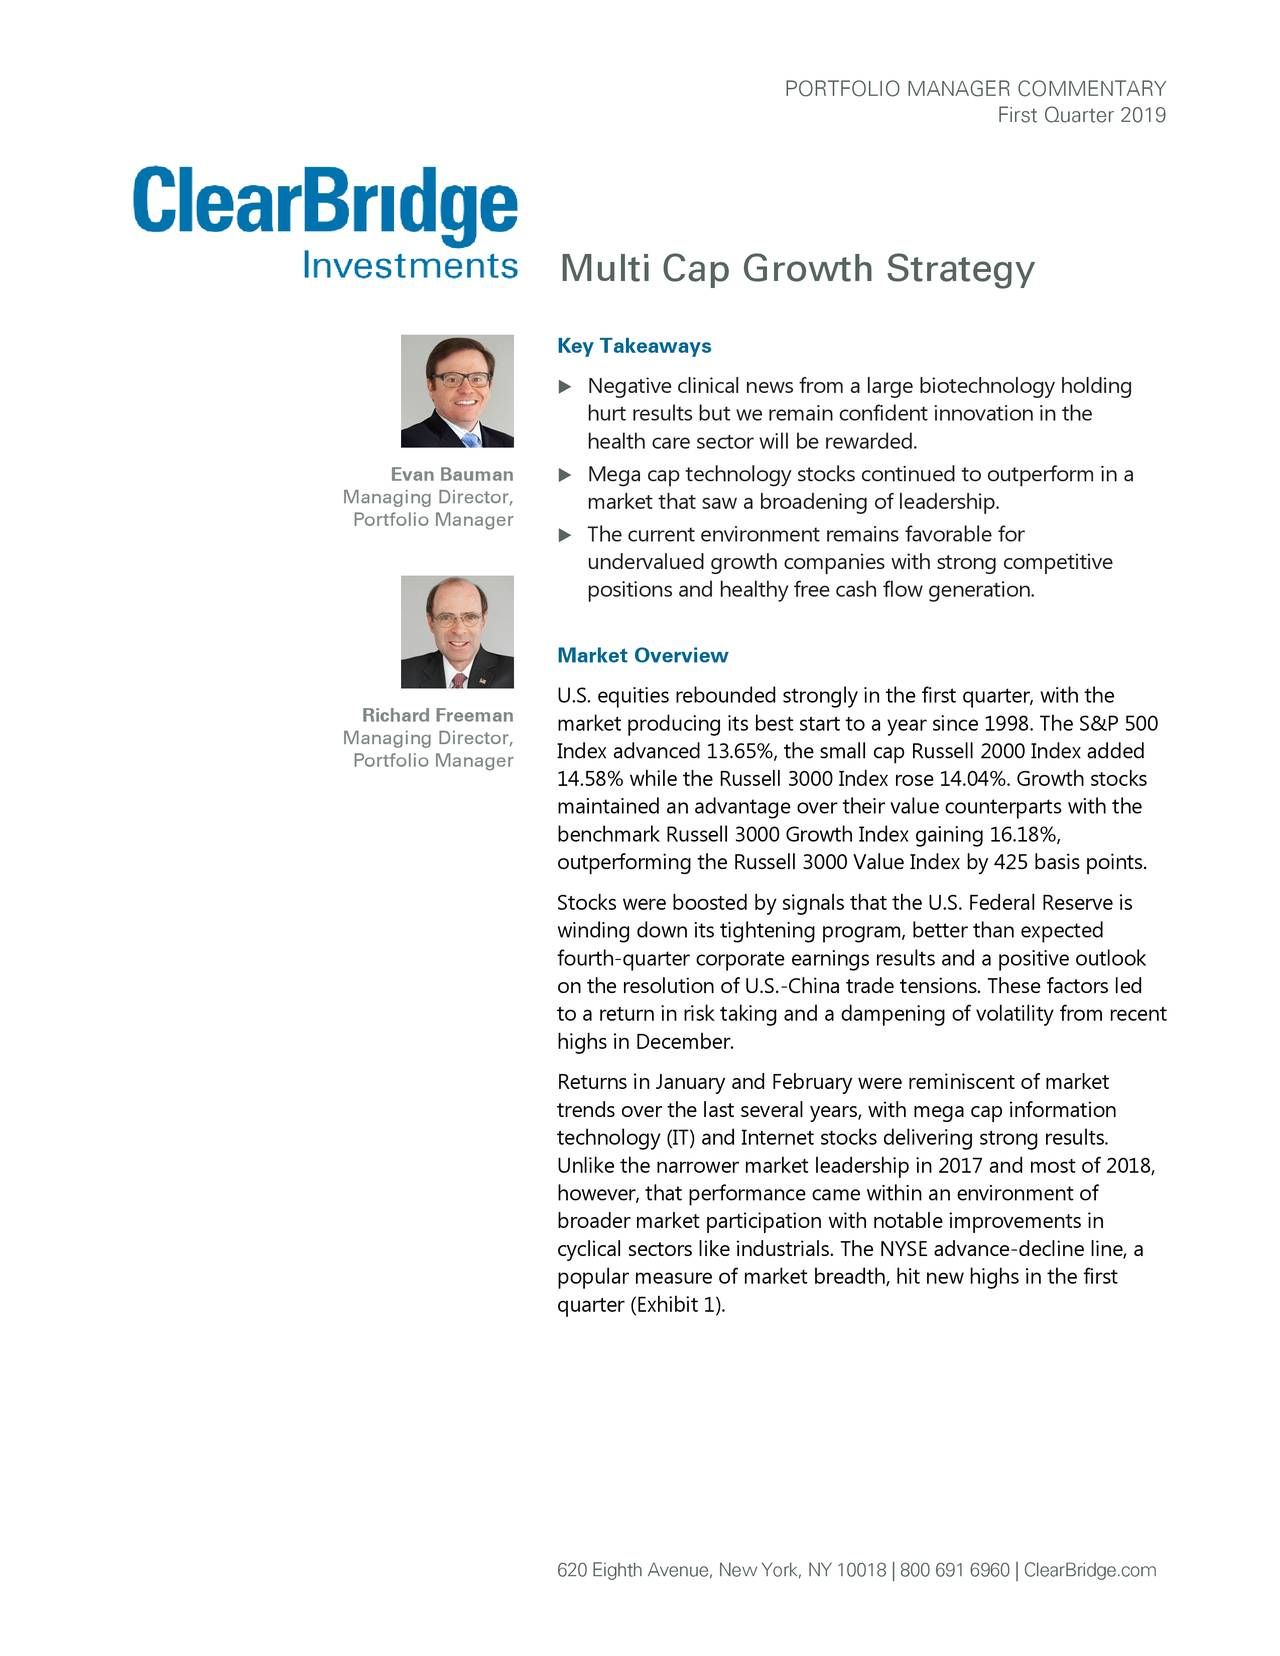 First Quarter 2019 Multi Cap Growth Strategy Key Takeaways  Negative clinical news from a large biotechnology holding hurt results but we remain confident innovation in the health care sector will be rewarded. Evan Bauman  Mega cap technology stocks continued to outperform in a Managing Director, market that saw a broadening of leadership . Portfolio Manager  The current environment remains favorable for undervalued growth companies with strong competitive positions and healthy free cash flow generation. Market Overview U.S. equities rebounded strongly in the first quarter, with the Richard Freeman market producing its best start to a year since 1998. The S&P 500 Managing Director, Index advanced 13.65%, the small cap Russell 2000 Index added Portfolio Manager 14.58% while the Russell 3000 Index rose 14.04%. Growth stocks maintained an advantage over their value counterparts with the benchmark Russell 3000 Growth Index gaining 16.18%, outperforming the Russell 3000 Value Index by 425 basis points. Stocks were boosted by signals that the U.S. Federal Reserve is winding down its tightening program, better than expected fourth-quarter corporate earnings results and a positive outlook on the resolution of U.S.-China trade tensions. These factors led to a return in risk taking and a dampening of volatility from recent highs in December. Returns in January and February were reminiscent of market trends over the last several years, with mega cap information technology (IT) and Internet stocks delivering strong results. Unlike the narrower market leadership in 2017 and most of 2018, however, that performance came within an environment of broader market participation with notable improvements in cyclical sectors like industrials. The NYSE advance-decline line, a popular measure of market breadth, hit new highs in the first quarter (Exhibit 1). 620 Eighth Avenue, New York, NY 10018 | 800 691 6960 | ClearBridge.com